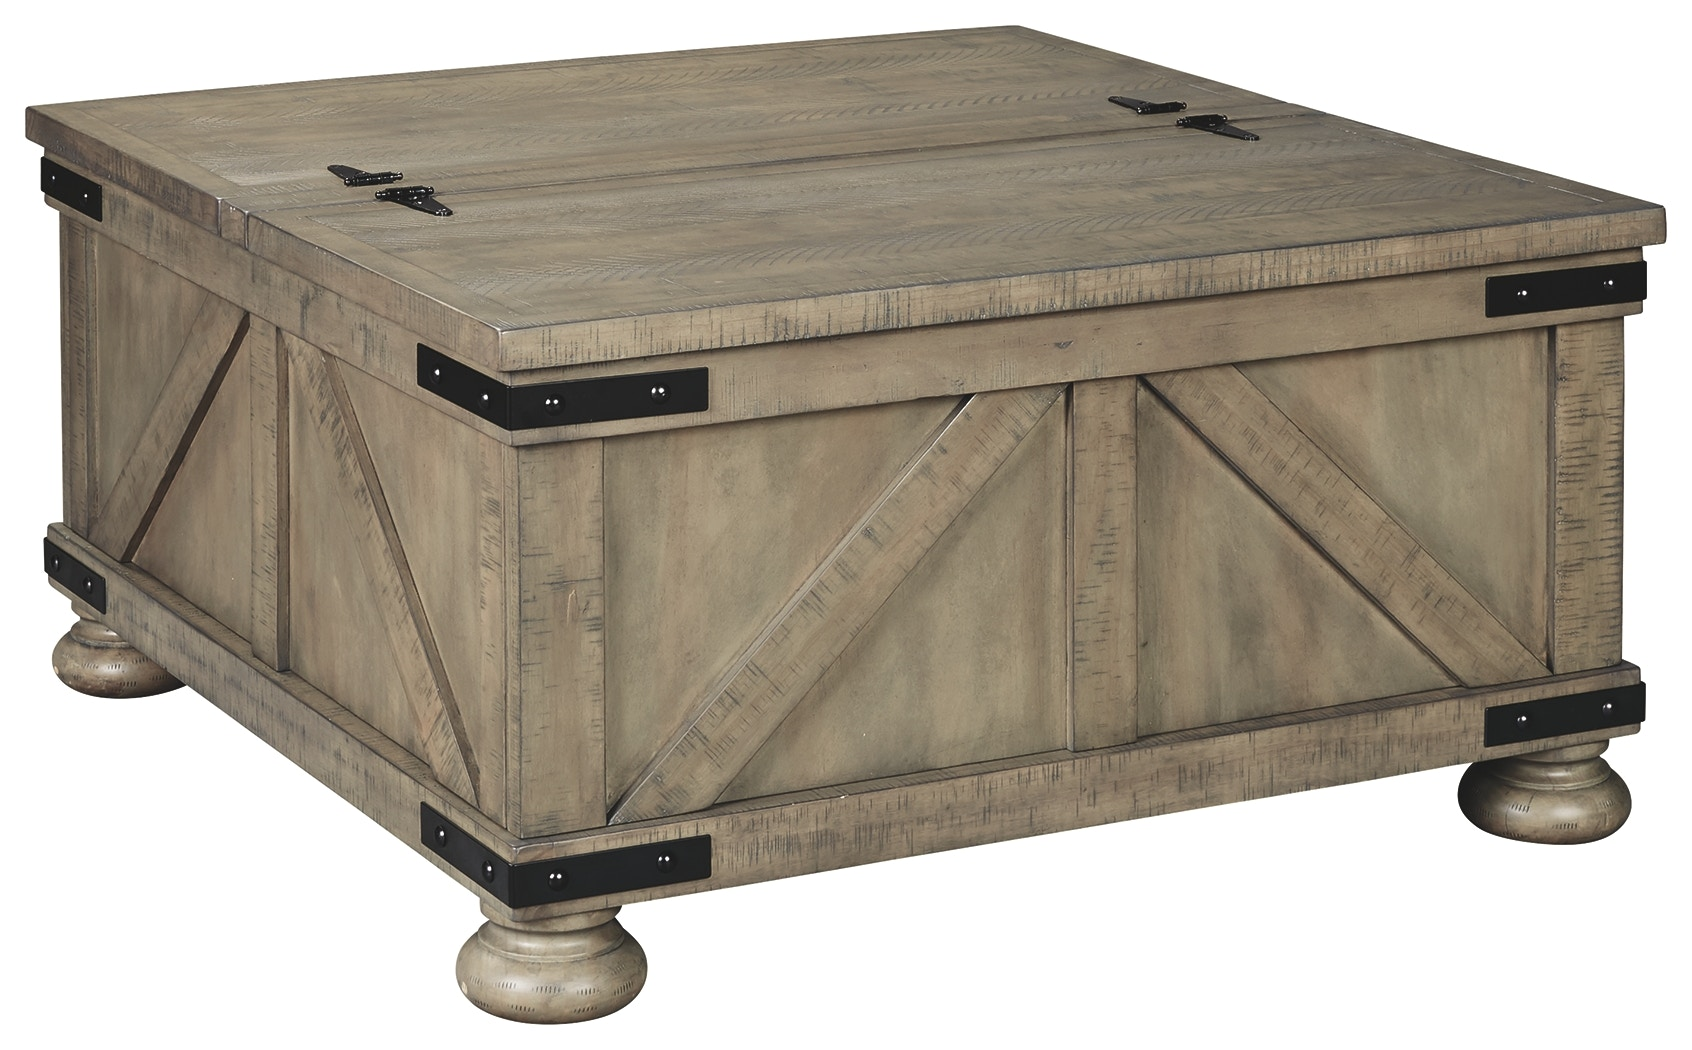 Signature Design By Ashley Living Room Aldwin Coffee Table With Lift Top  T457-20 - Markson's